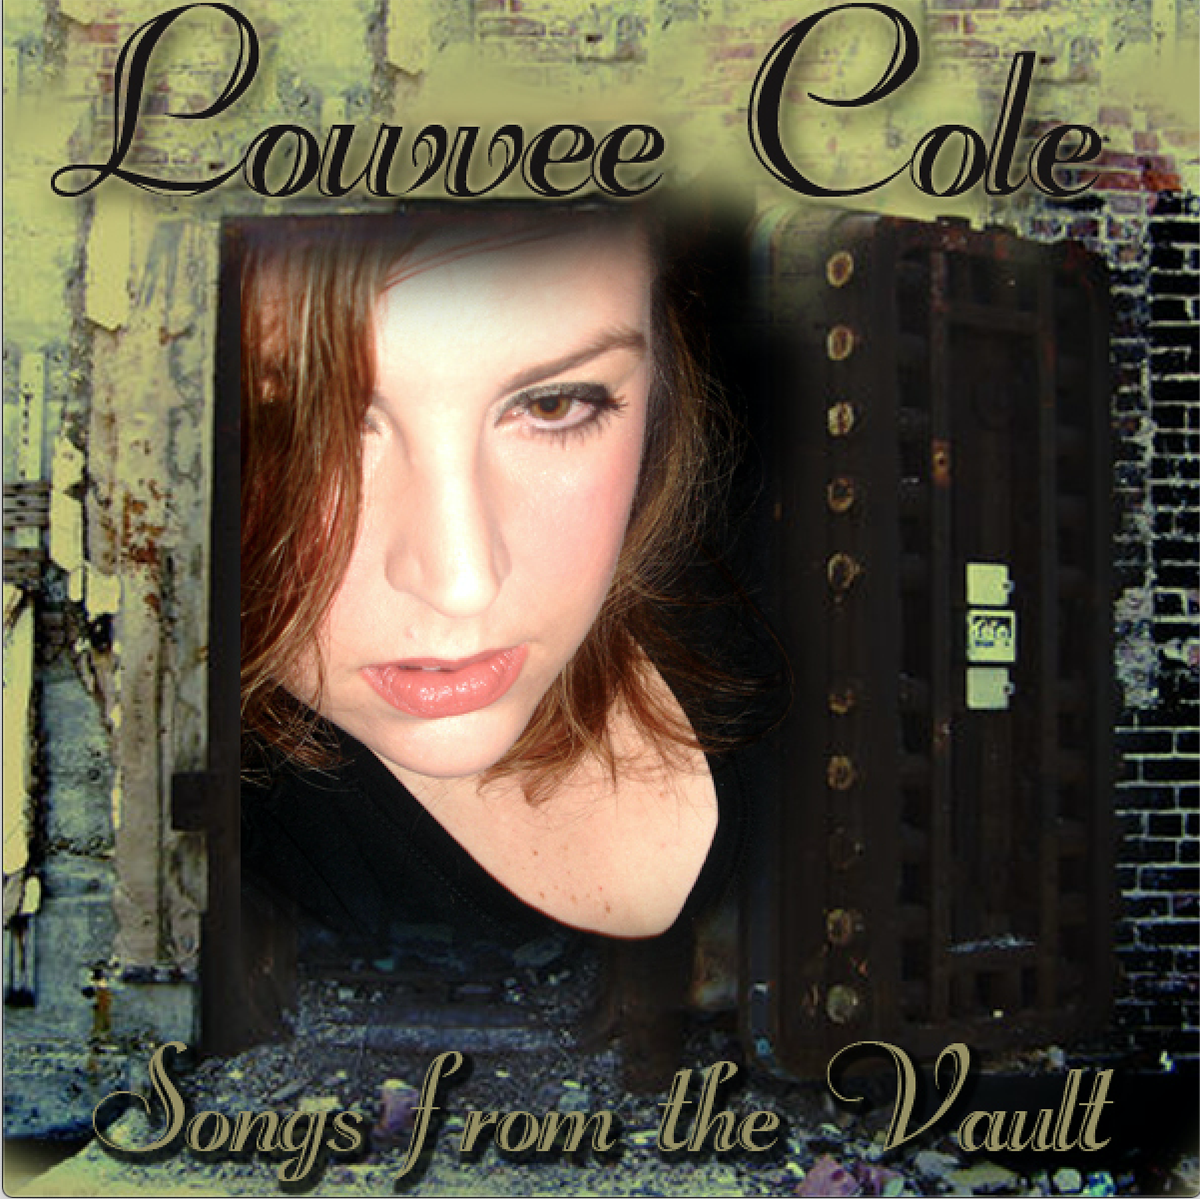 Unmastered Songs from the Vault - Four-song EP featuring The Forgetting Room.